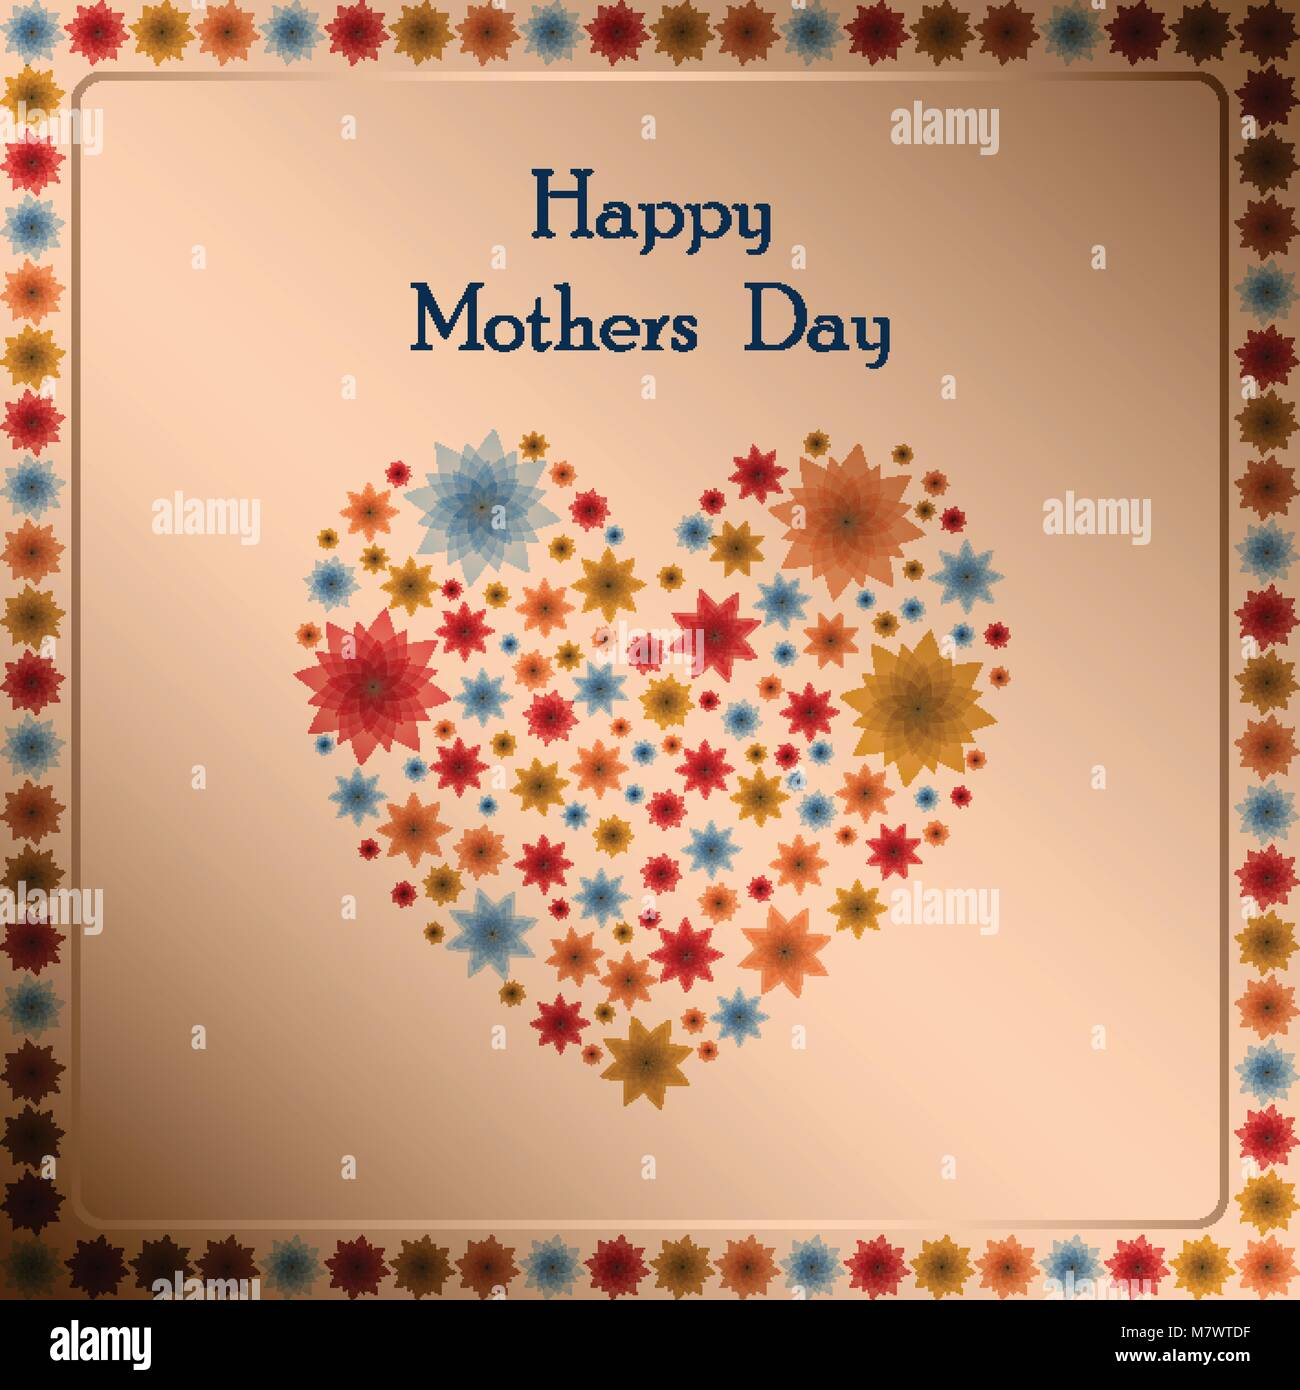 Mothers Day Vector Greeting Cards Postcard With A Big Heart Of